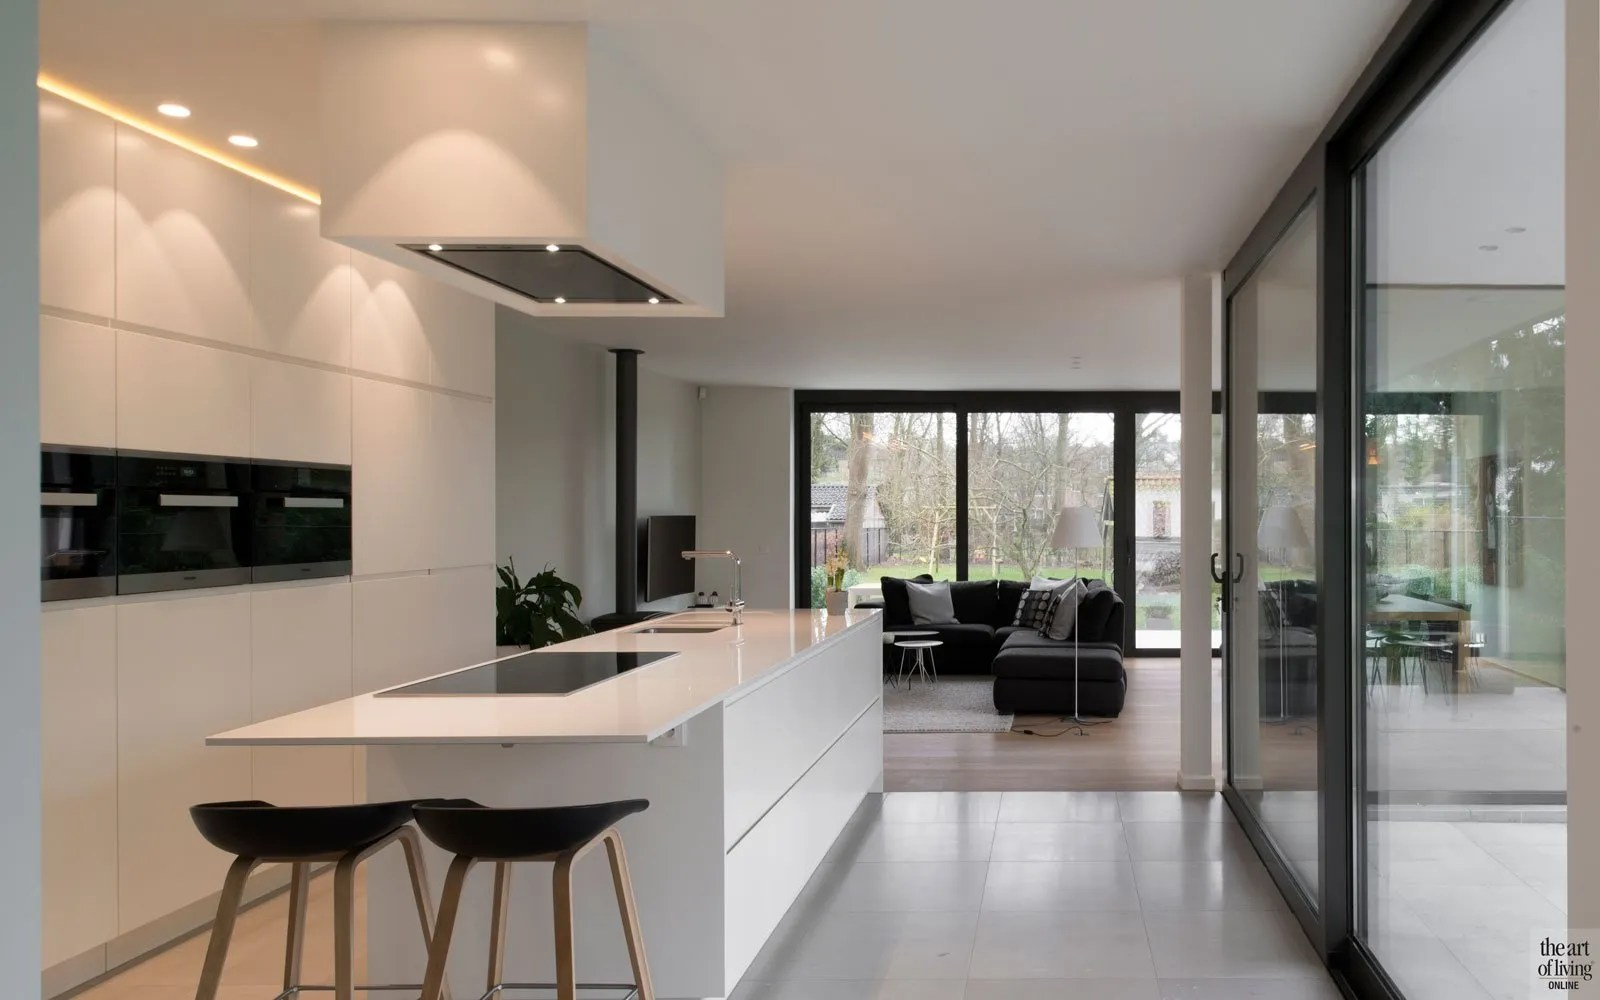 Aluminium Plaat Keuken Moderne Villa | Leers & Partners - The Art Of Living (be)